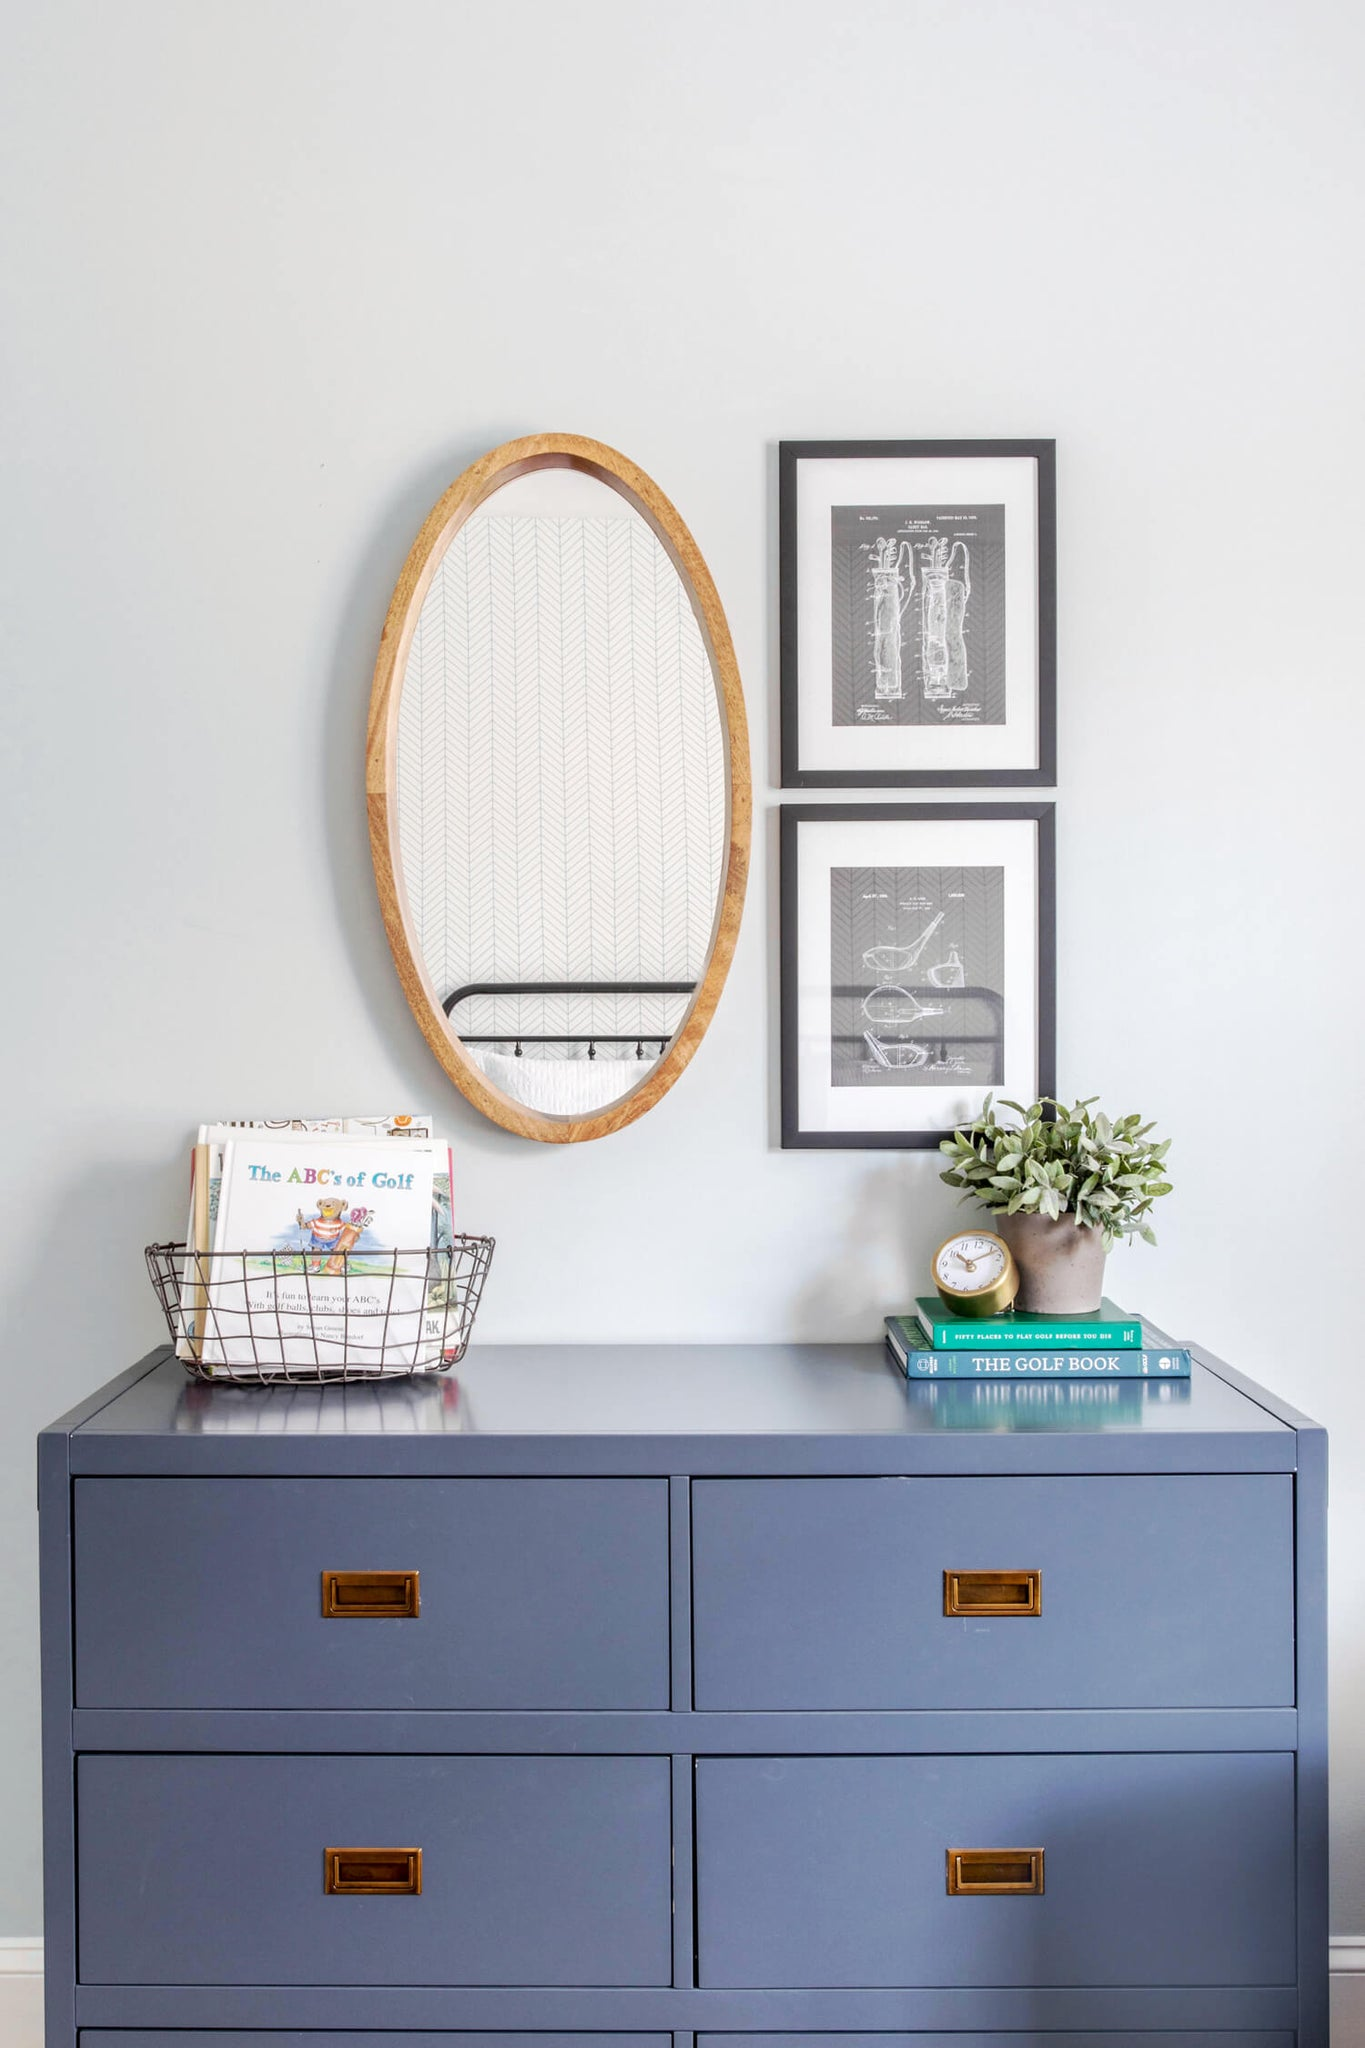 Toddler room interior with blue dresser, round wooden mirror and golf theme accents